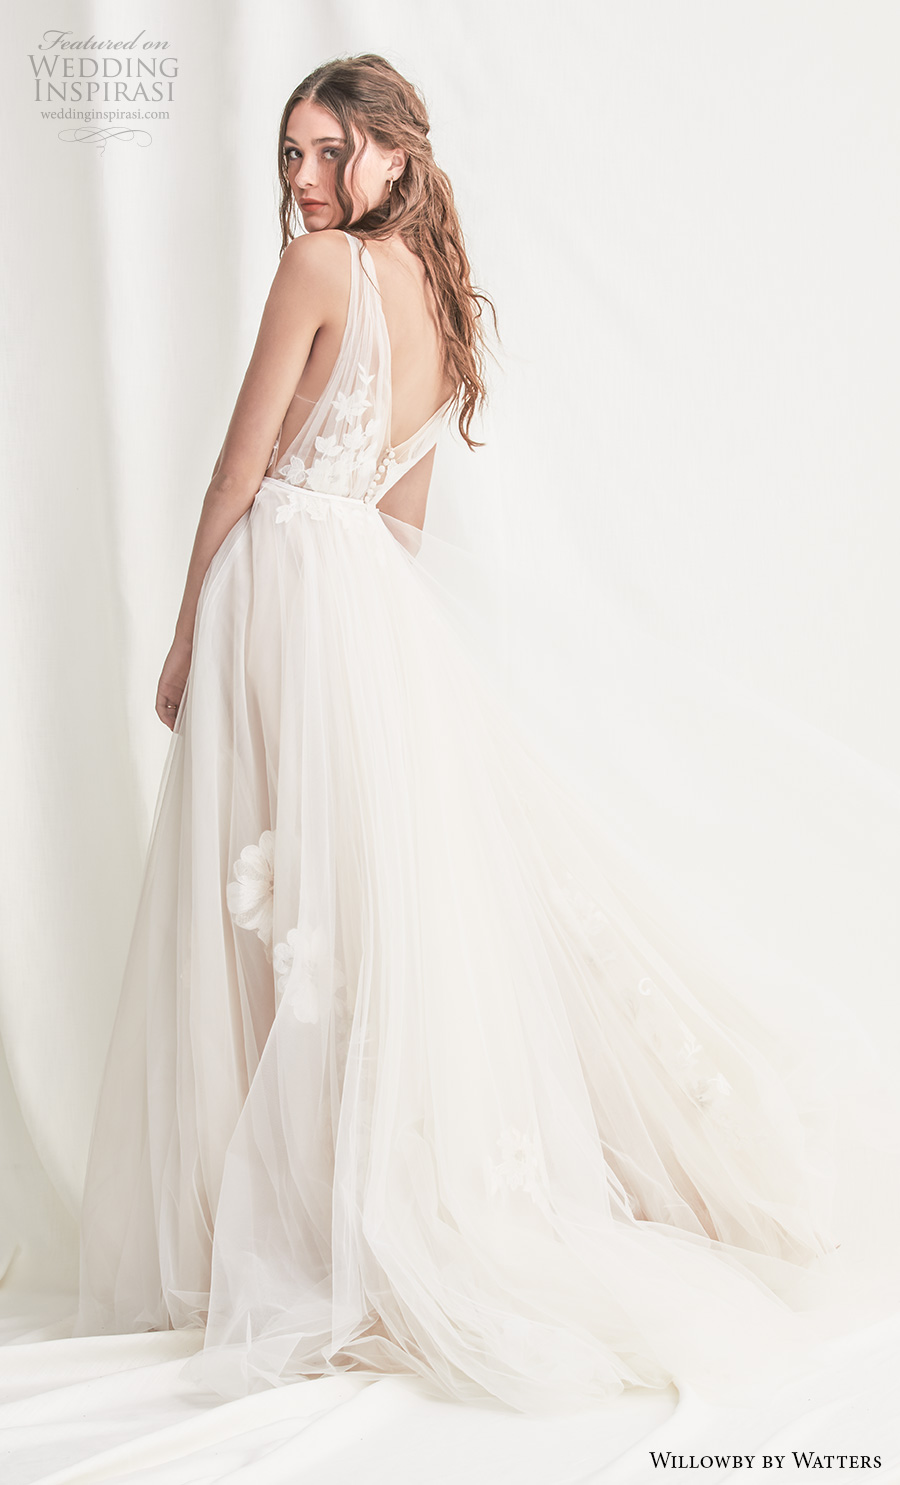 willowby by watters spring 2019 bridal sleeveless deep v neck heavily embellished bodice open side romantic a  line wedding dress backless v back chapel train (3) bv